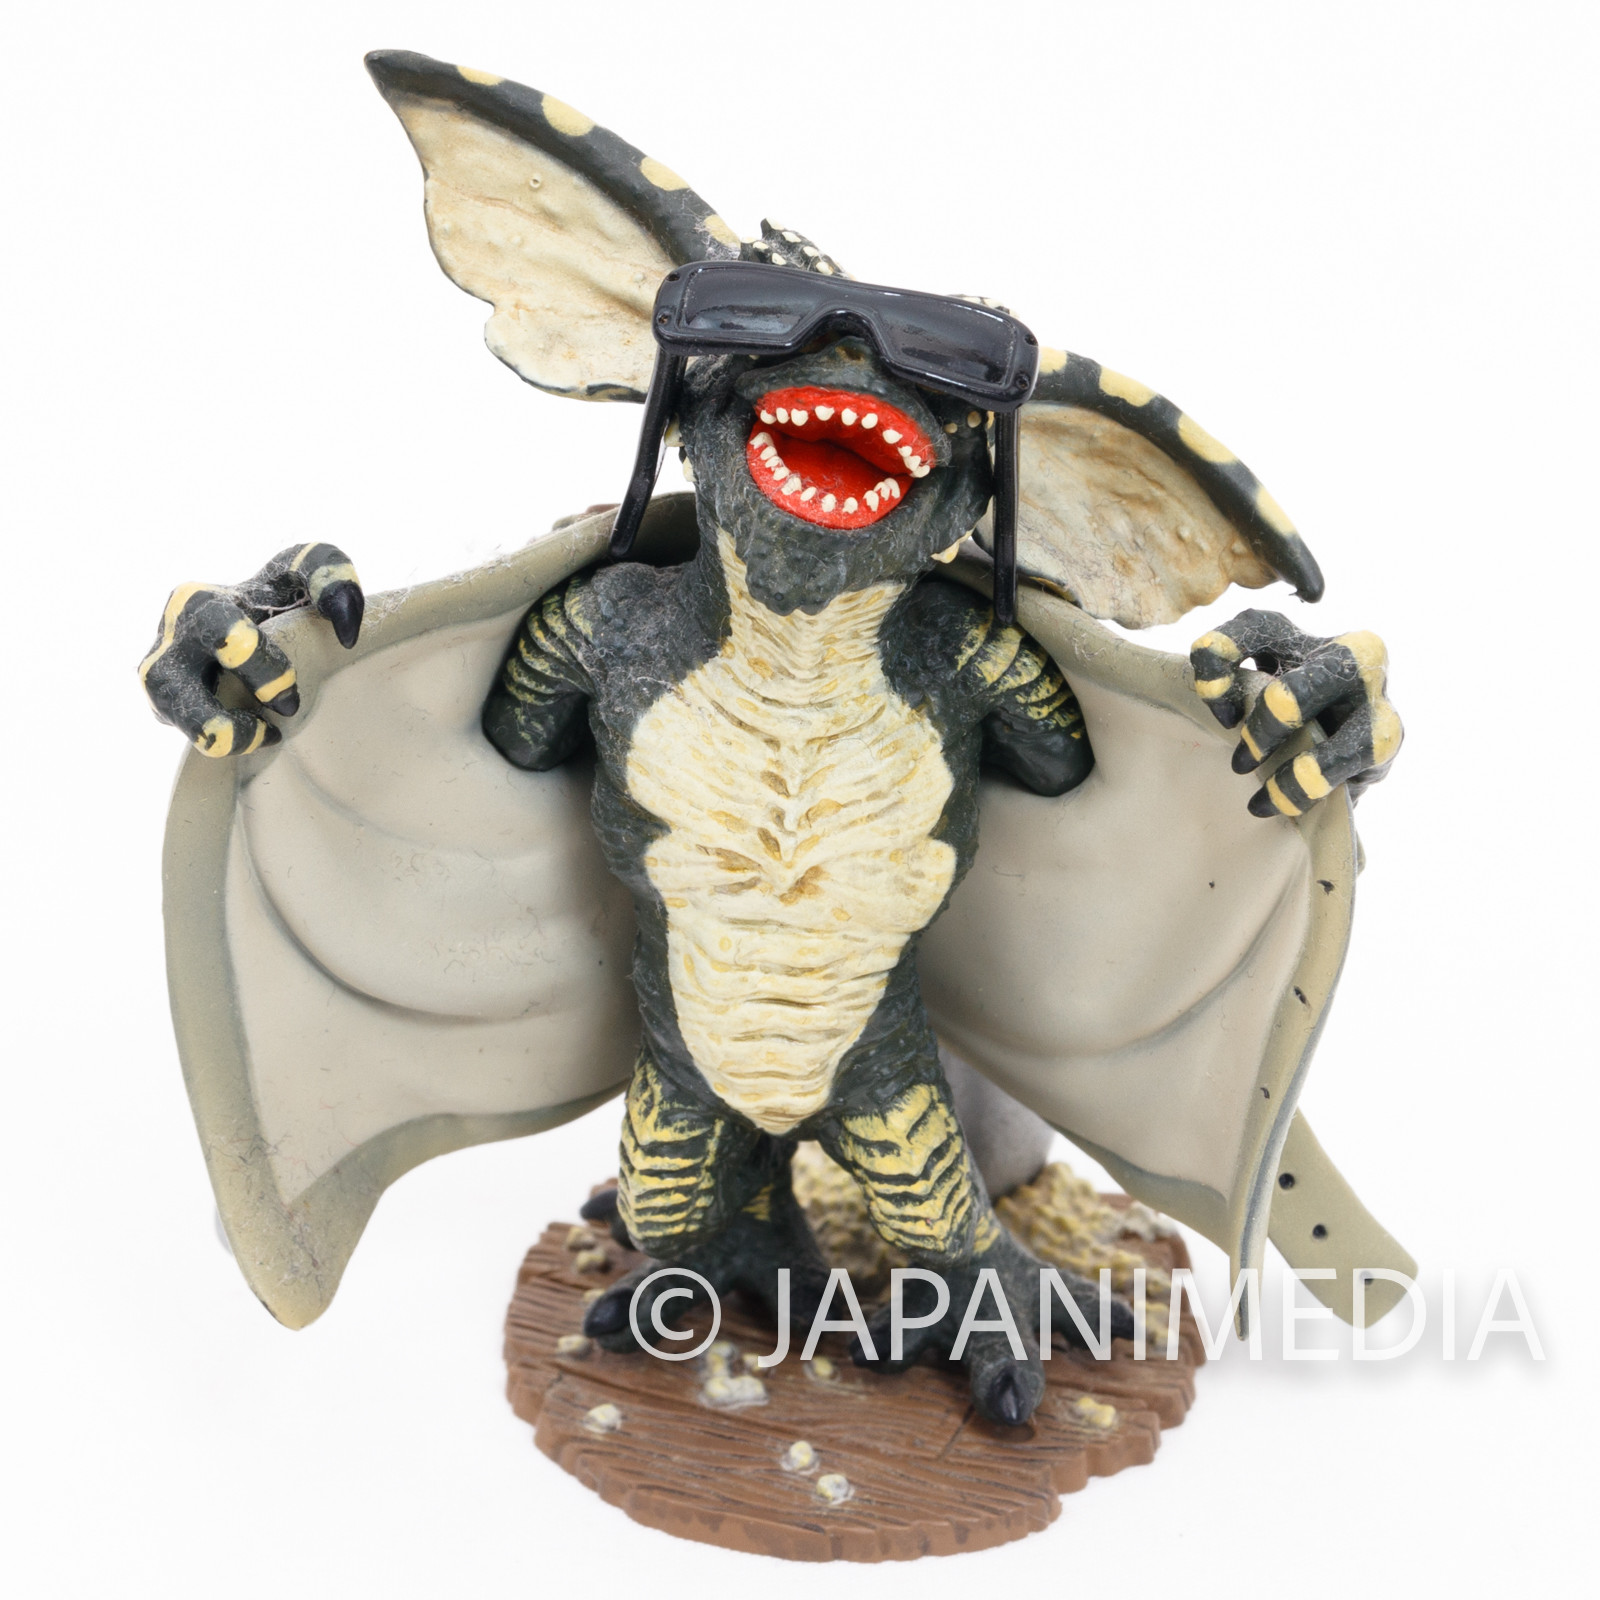 RARE Gremlins Sunglasses One Coin Figure Series Kotobukiya JAPAN